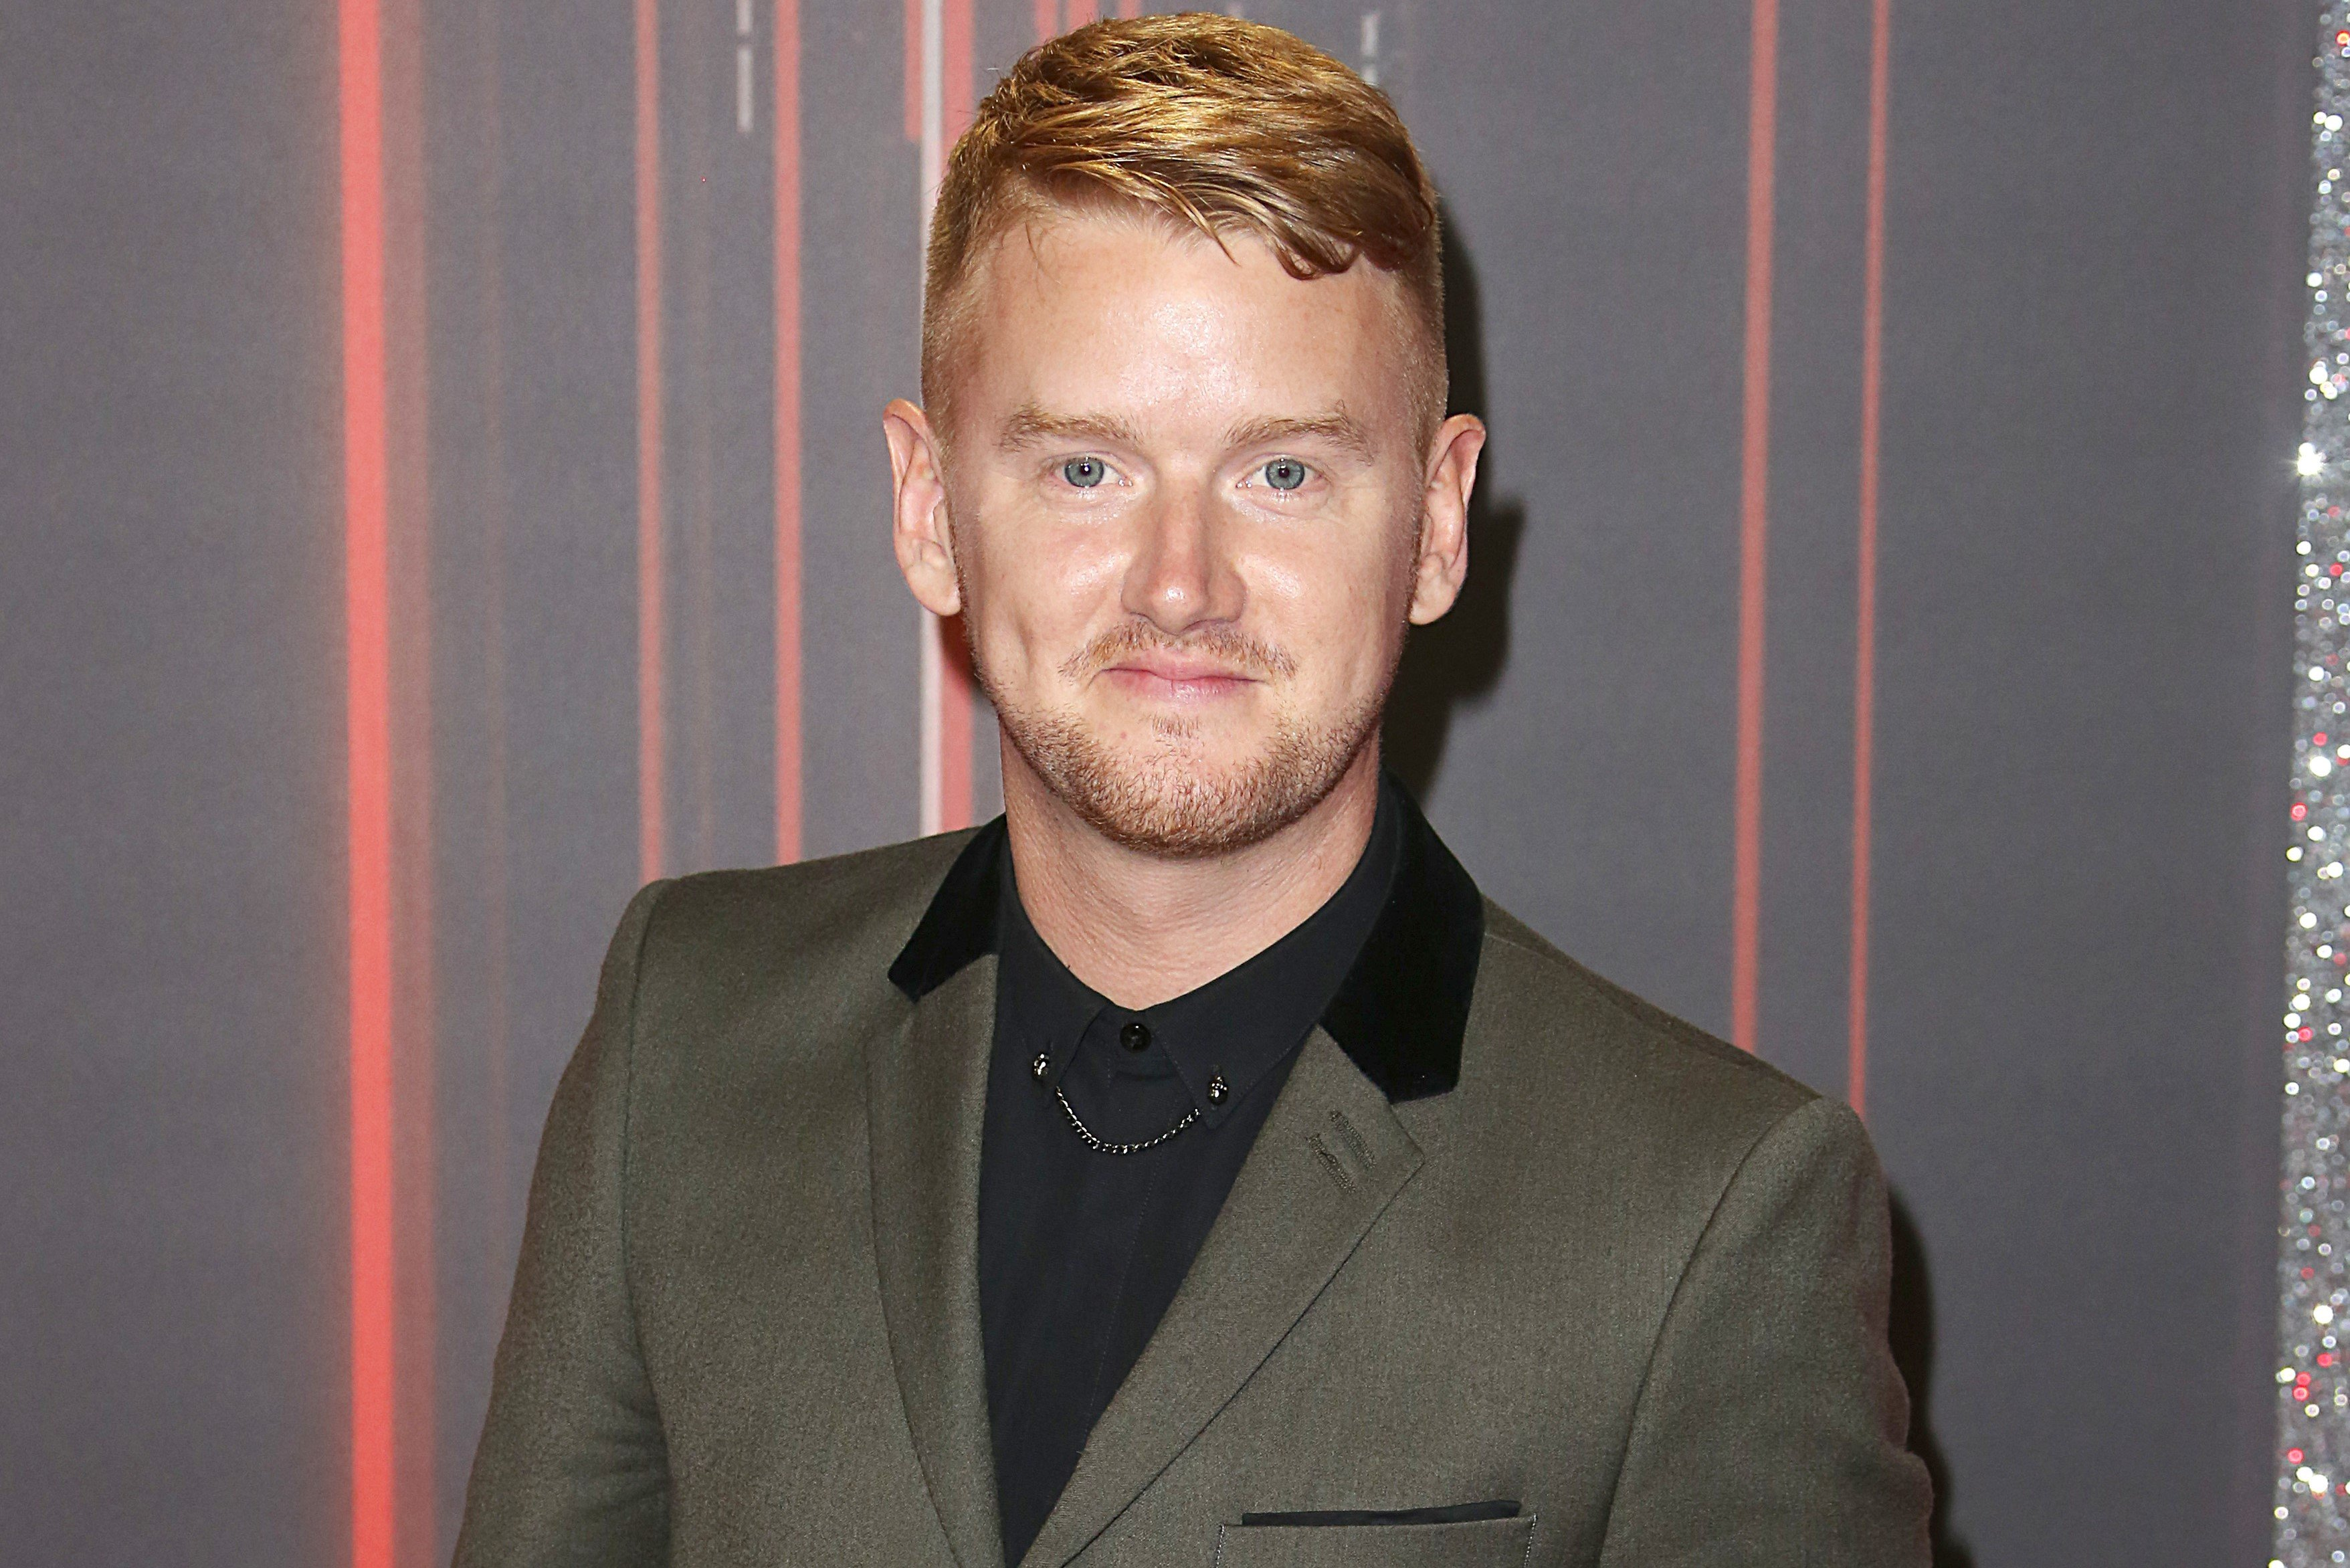 Coronation Street star Mikey North's wife expecting their second child